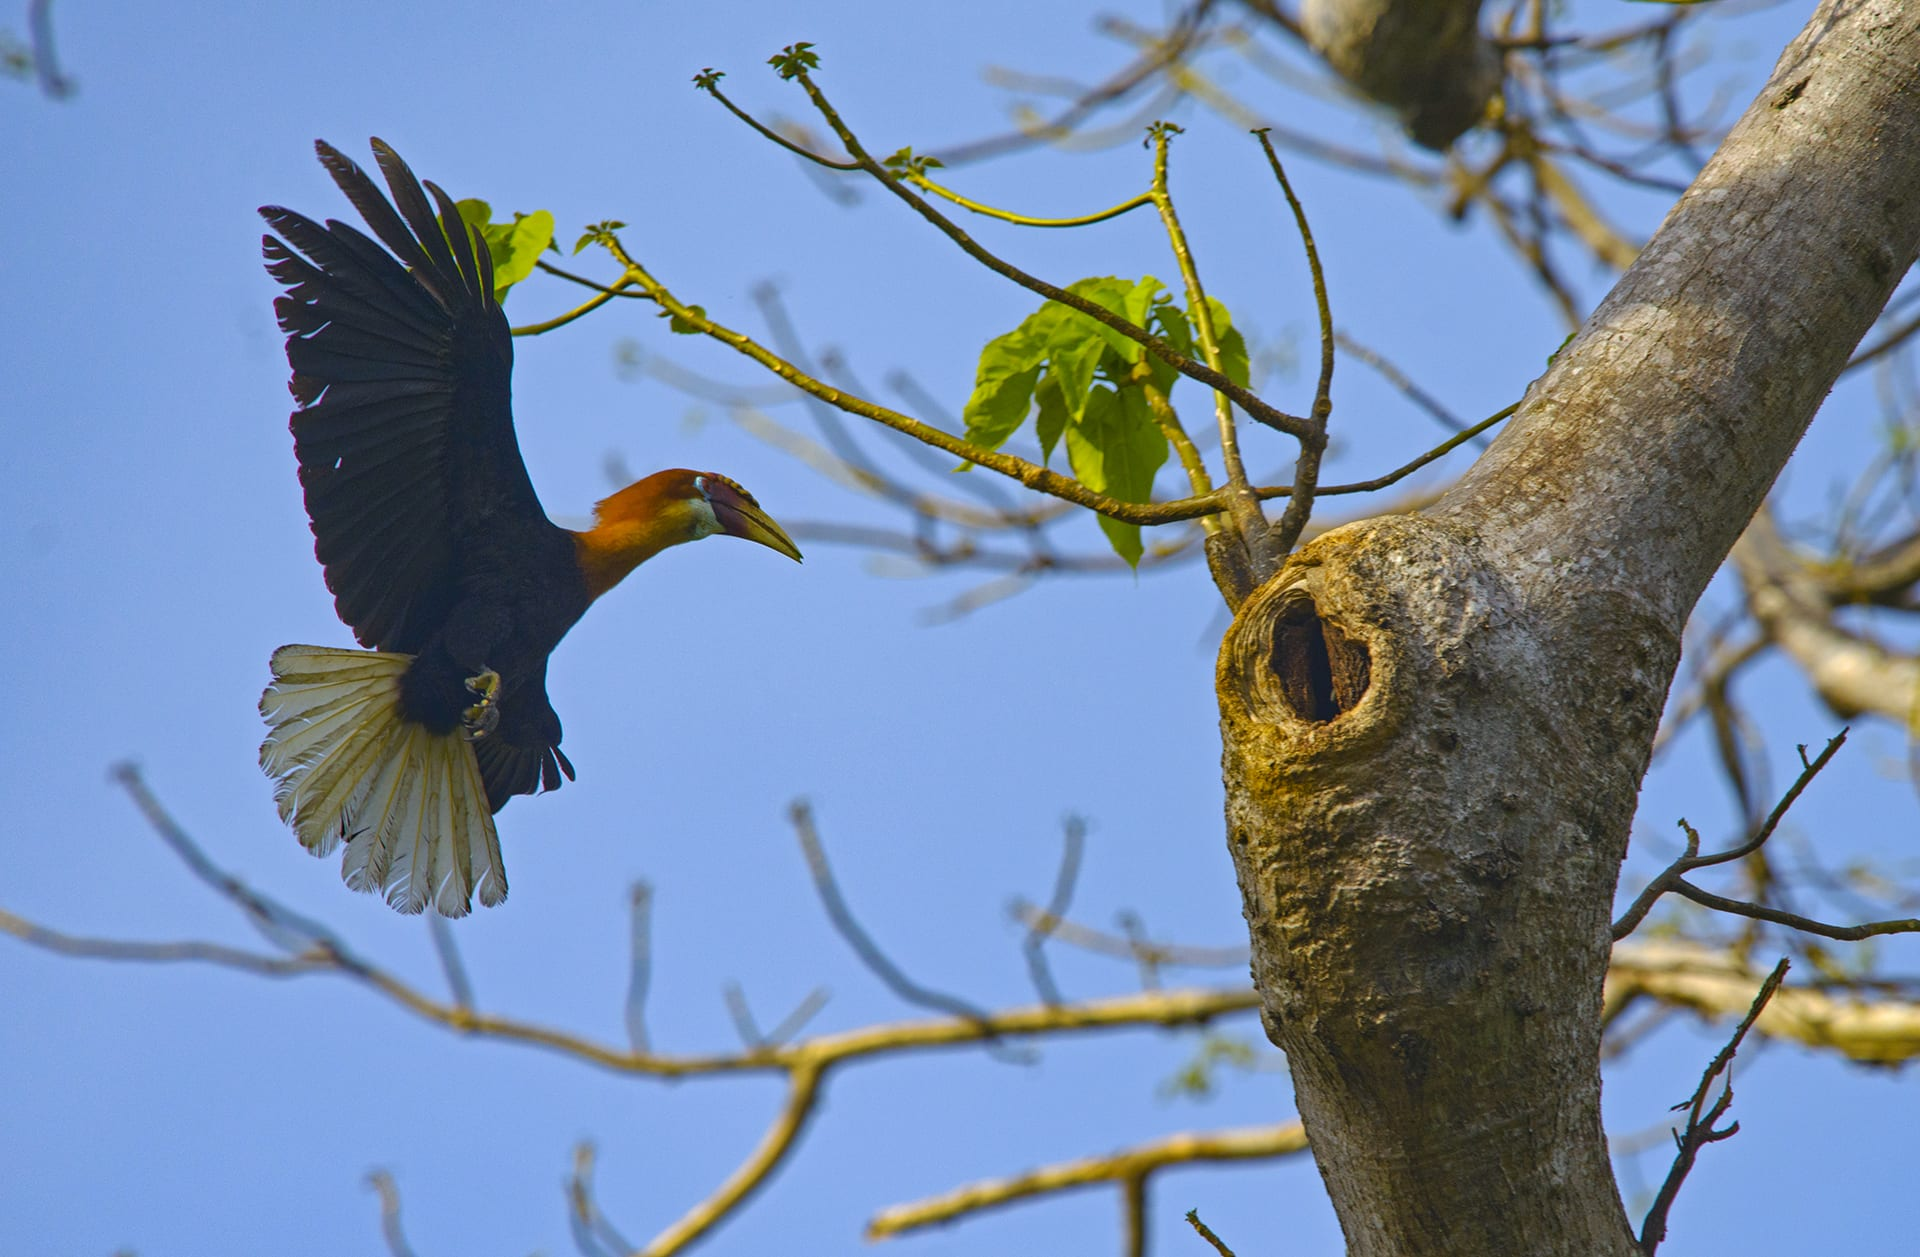 When the breeding is complete, the female hornbill seals herself in tree cavity using a mix of soil and faeces, with only a crack to receive food from her mate. She stays in her nest with her eggs until the chicks hatch and are ready for the outside world. Other species of hornbill are known to return to the same nest year after year to raise their young, but we do not know if this holds true for the Narcondam hornbill.